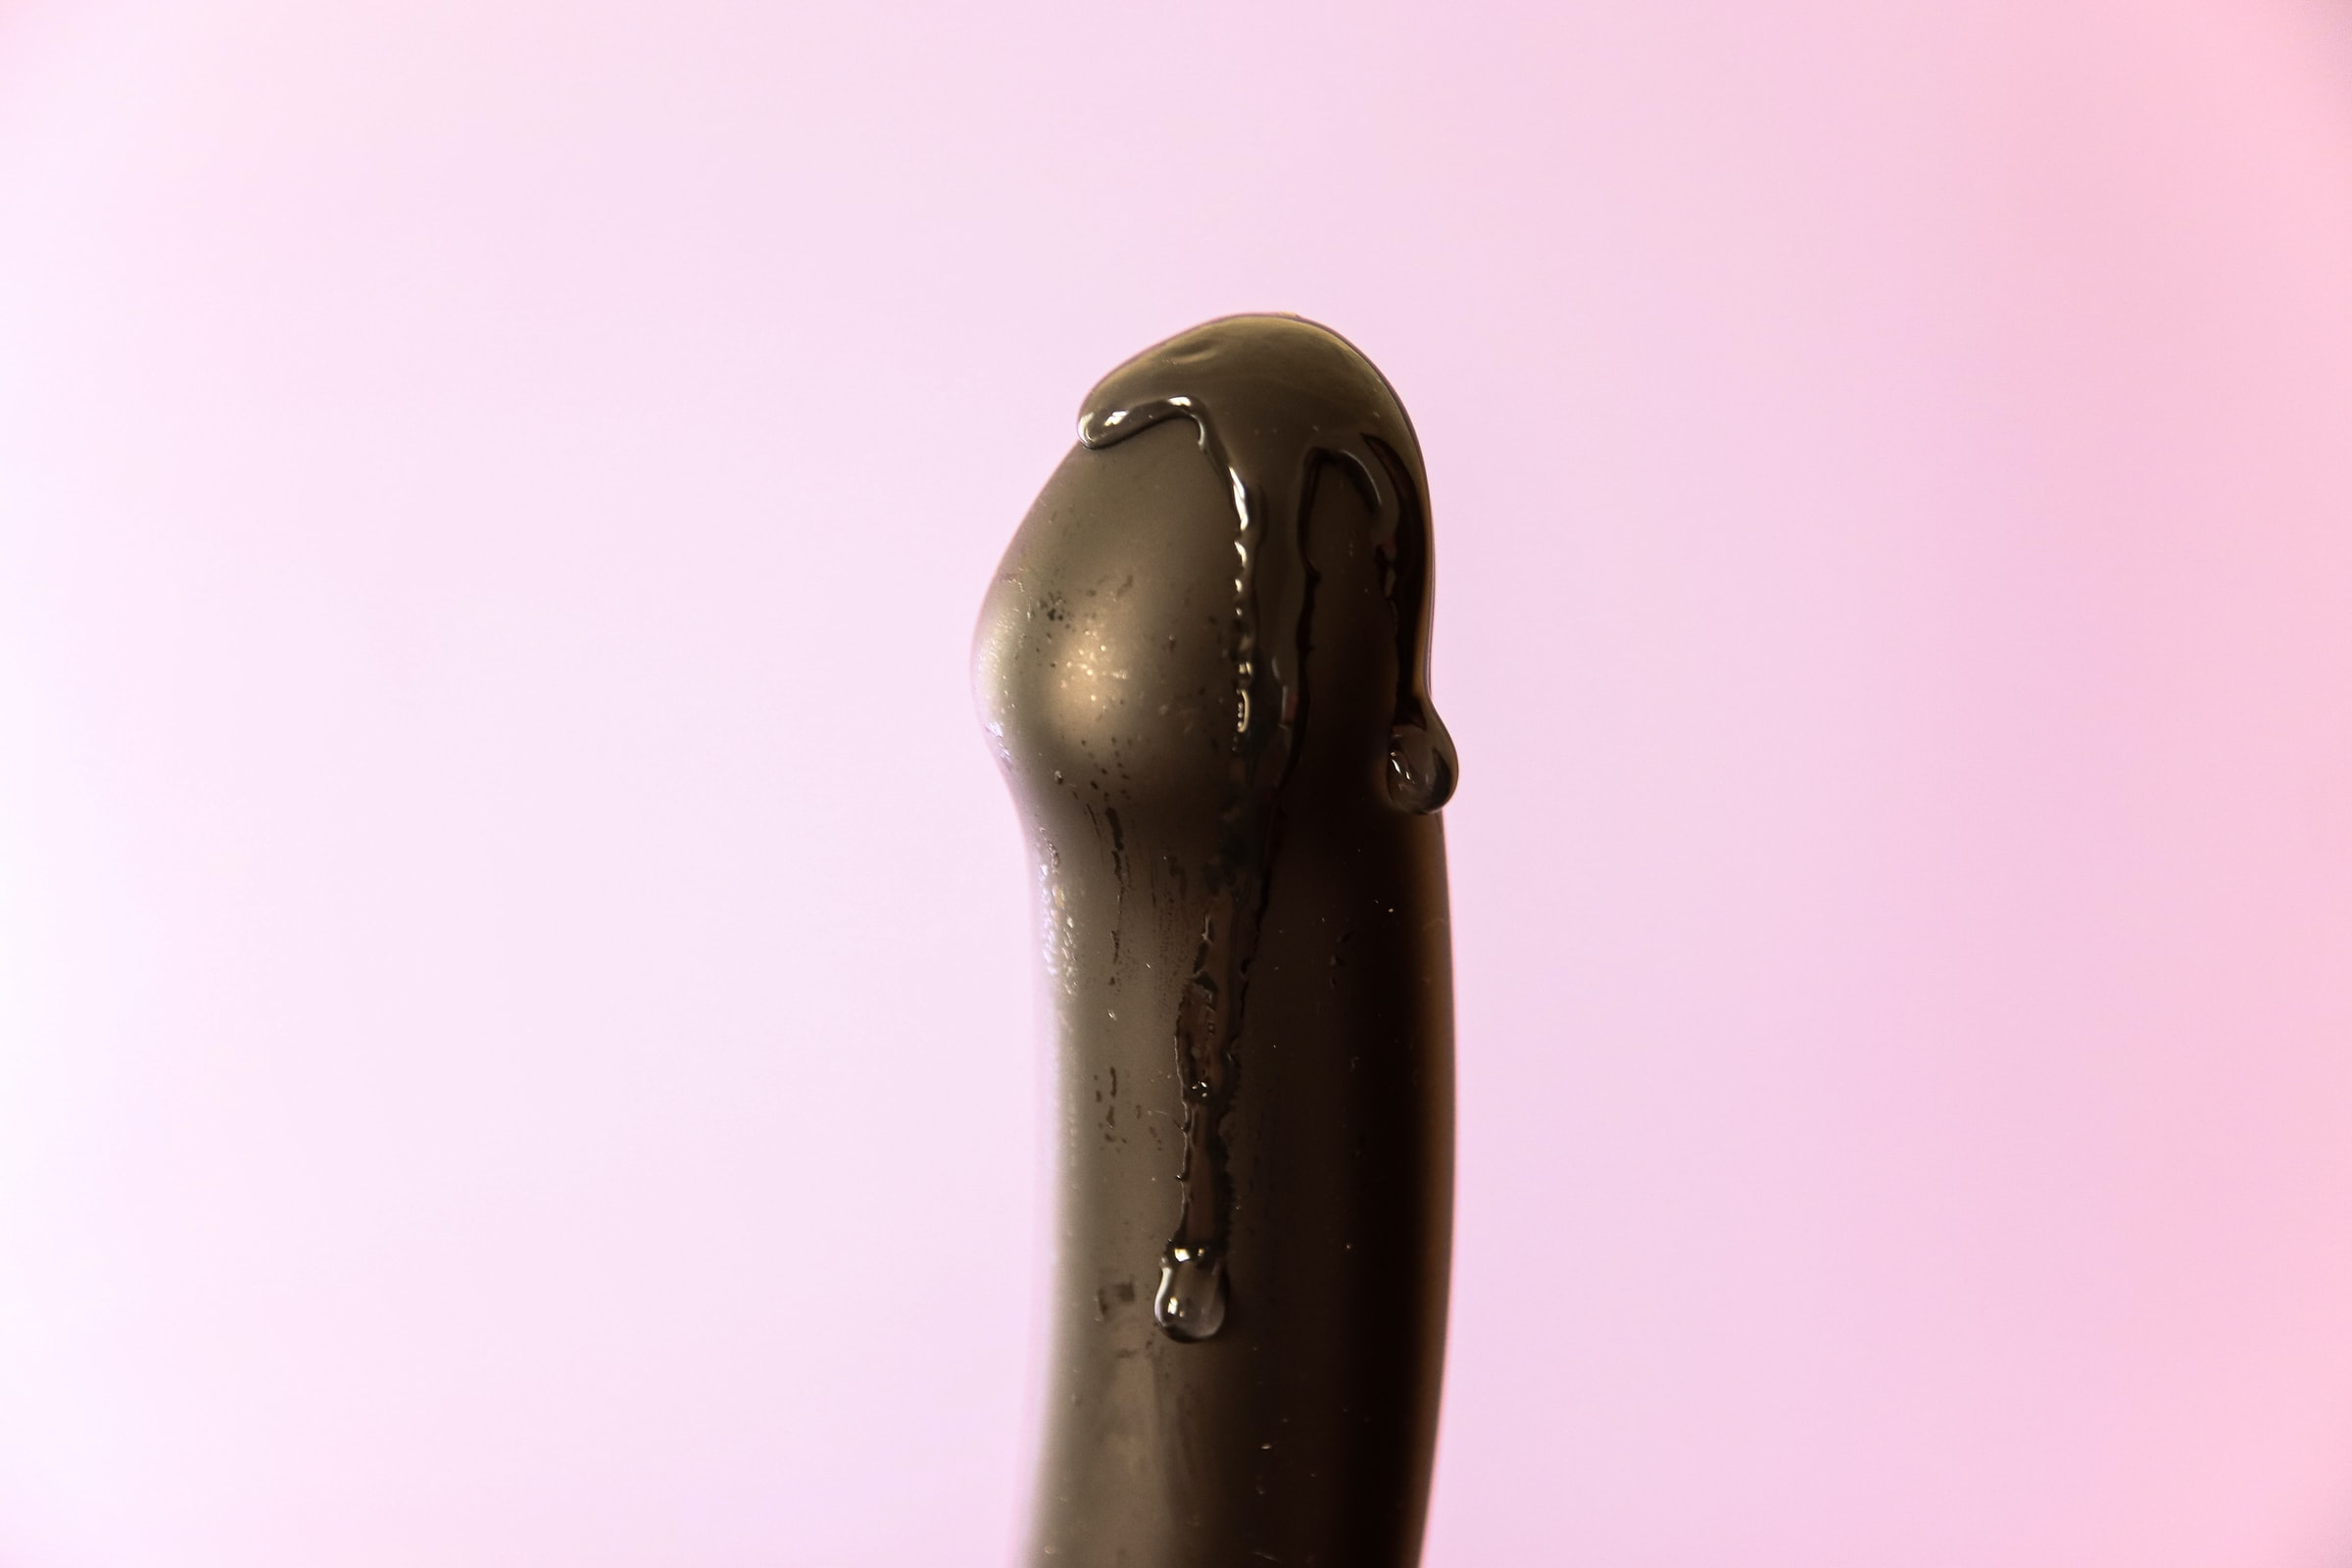 lube for anal dildos